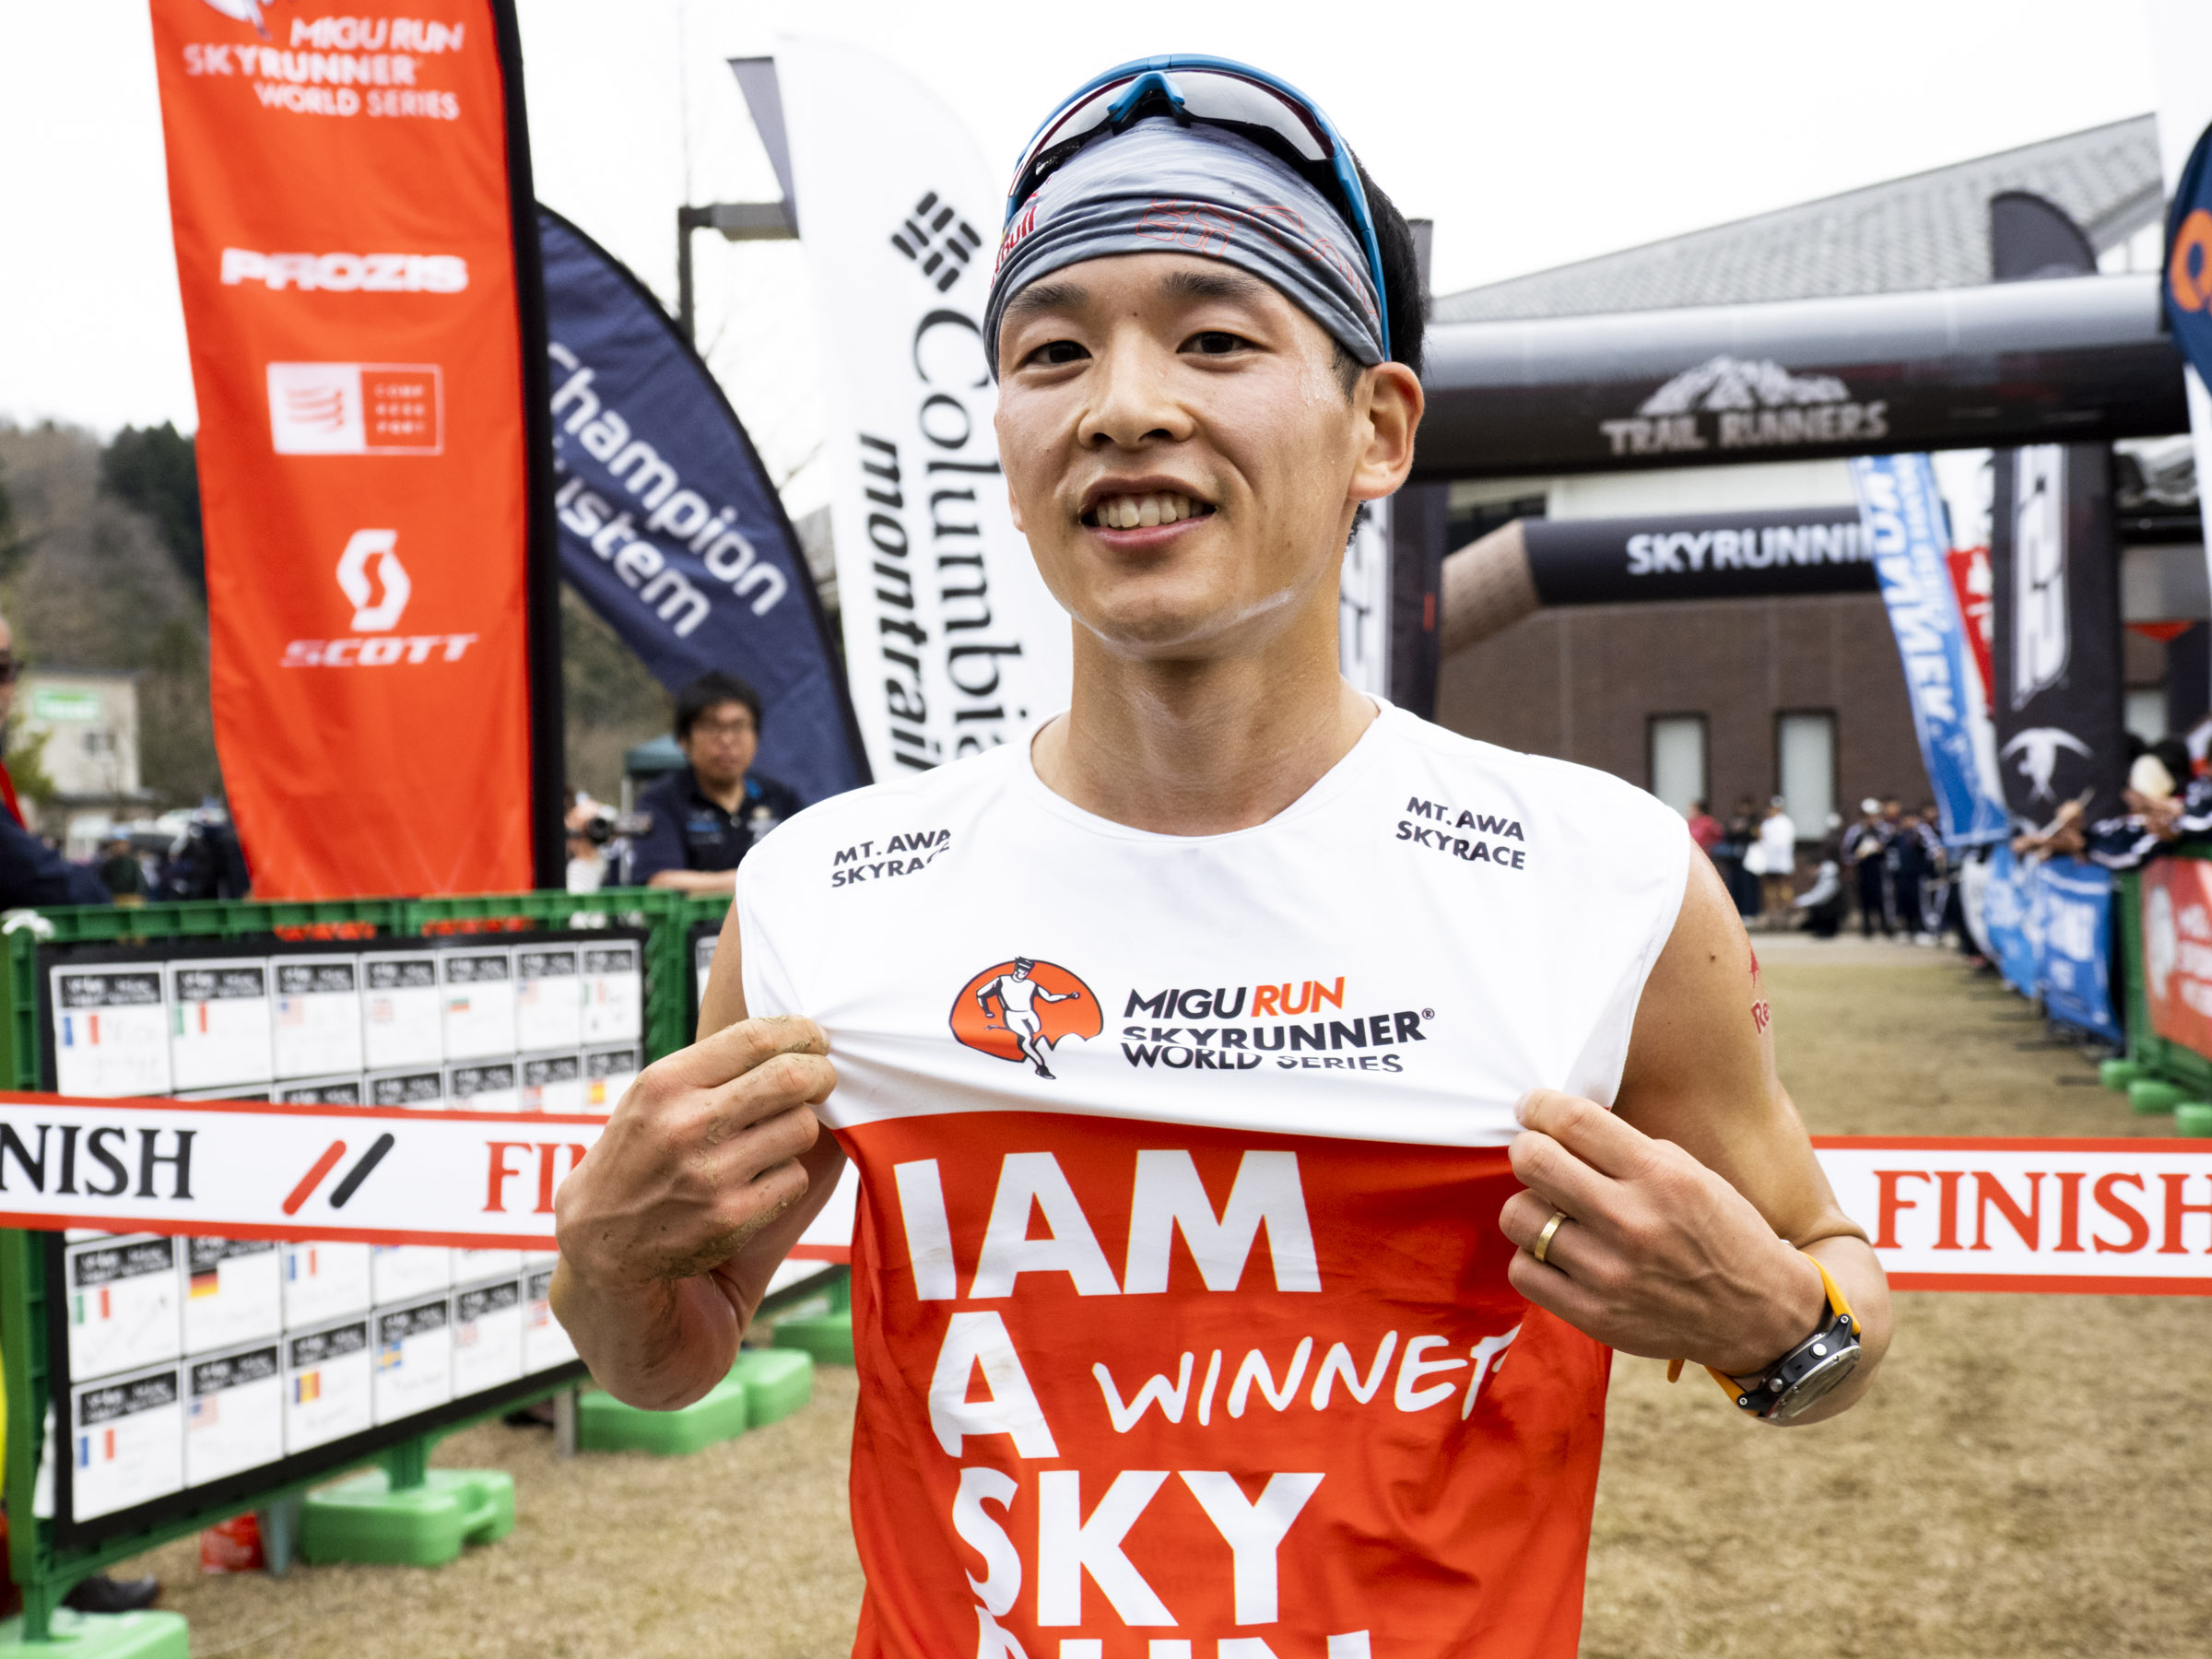 Run Ueda Migu Run Skyrunner World Series Winner's Bib Competition